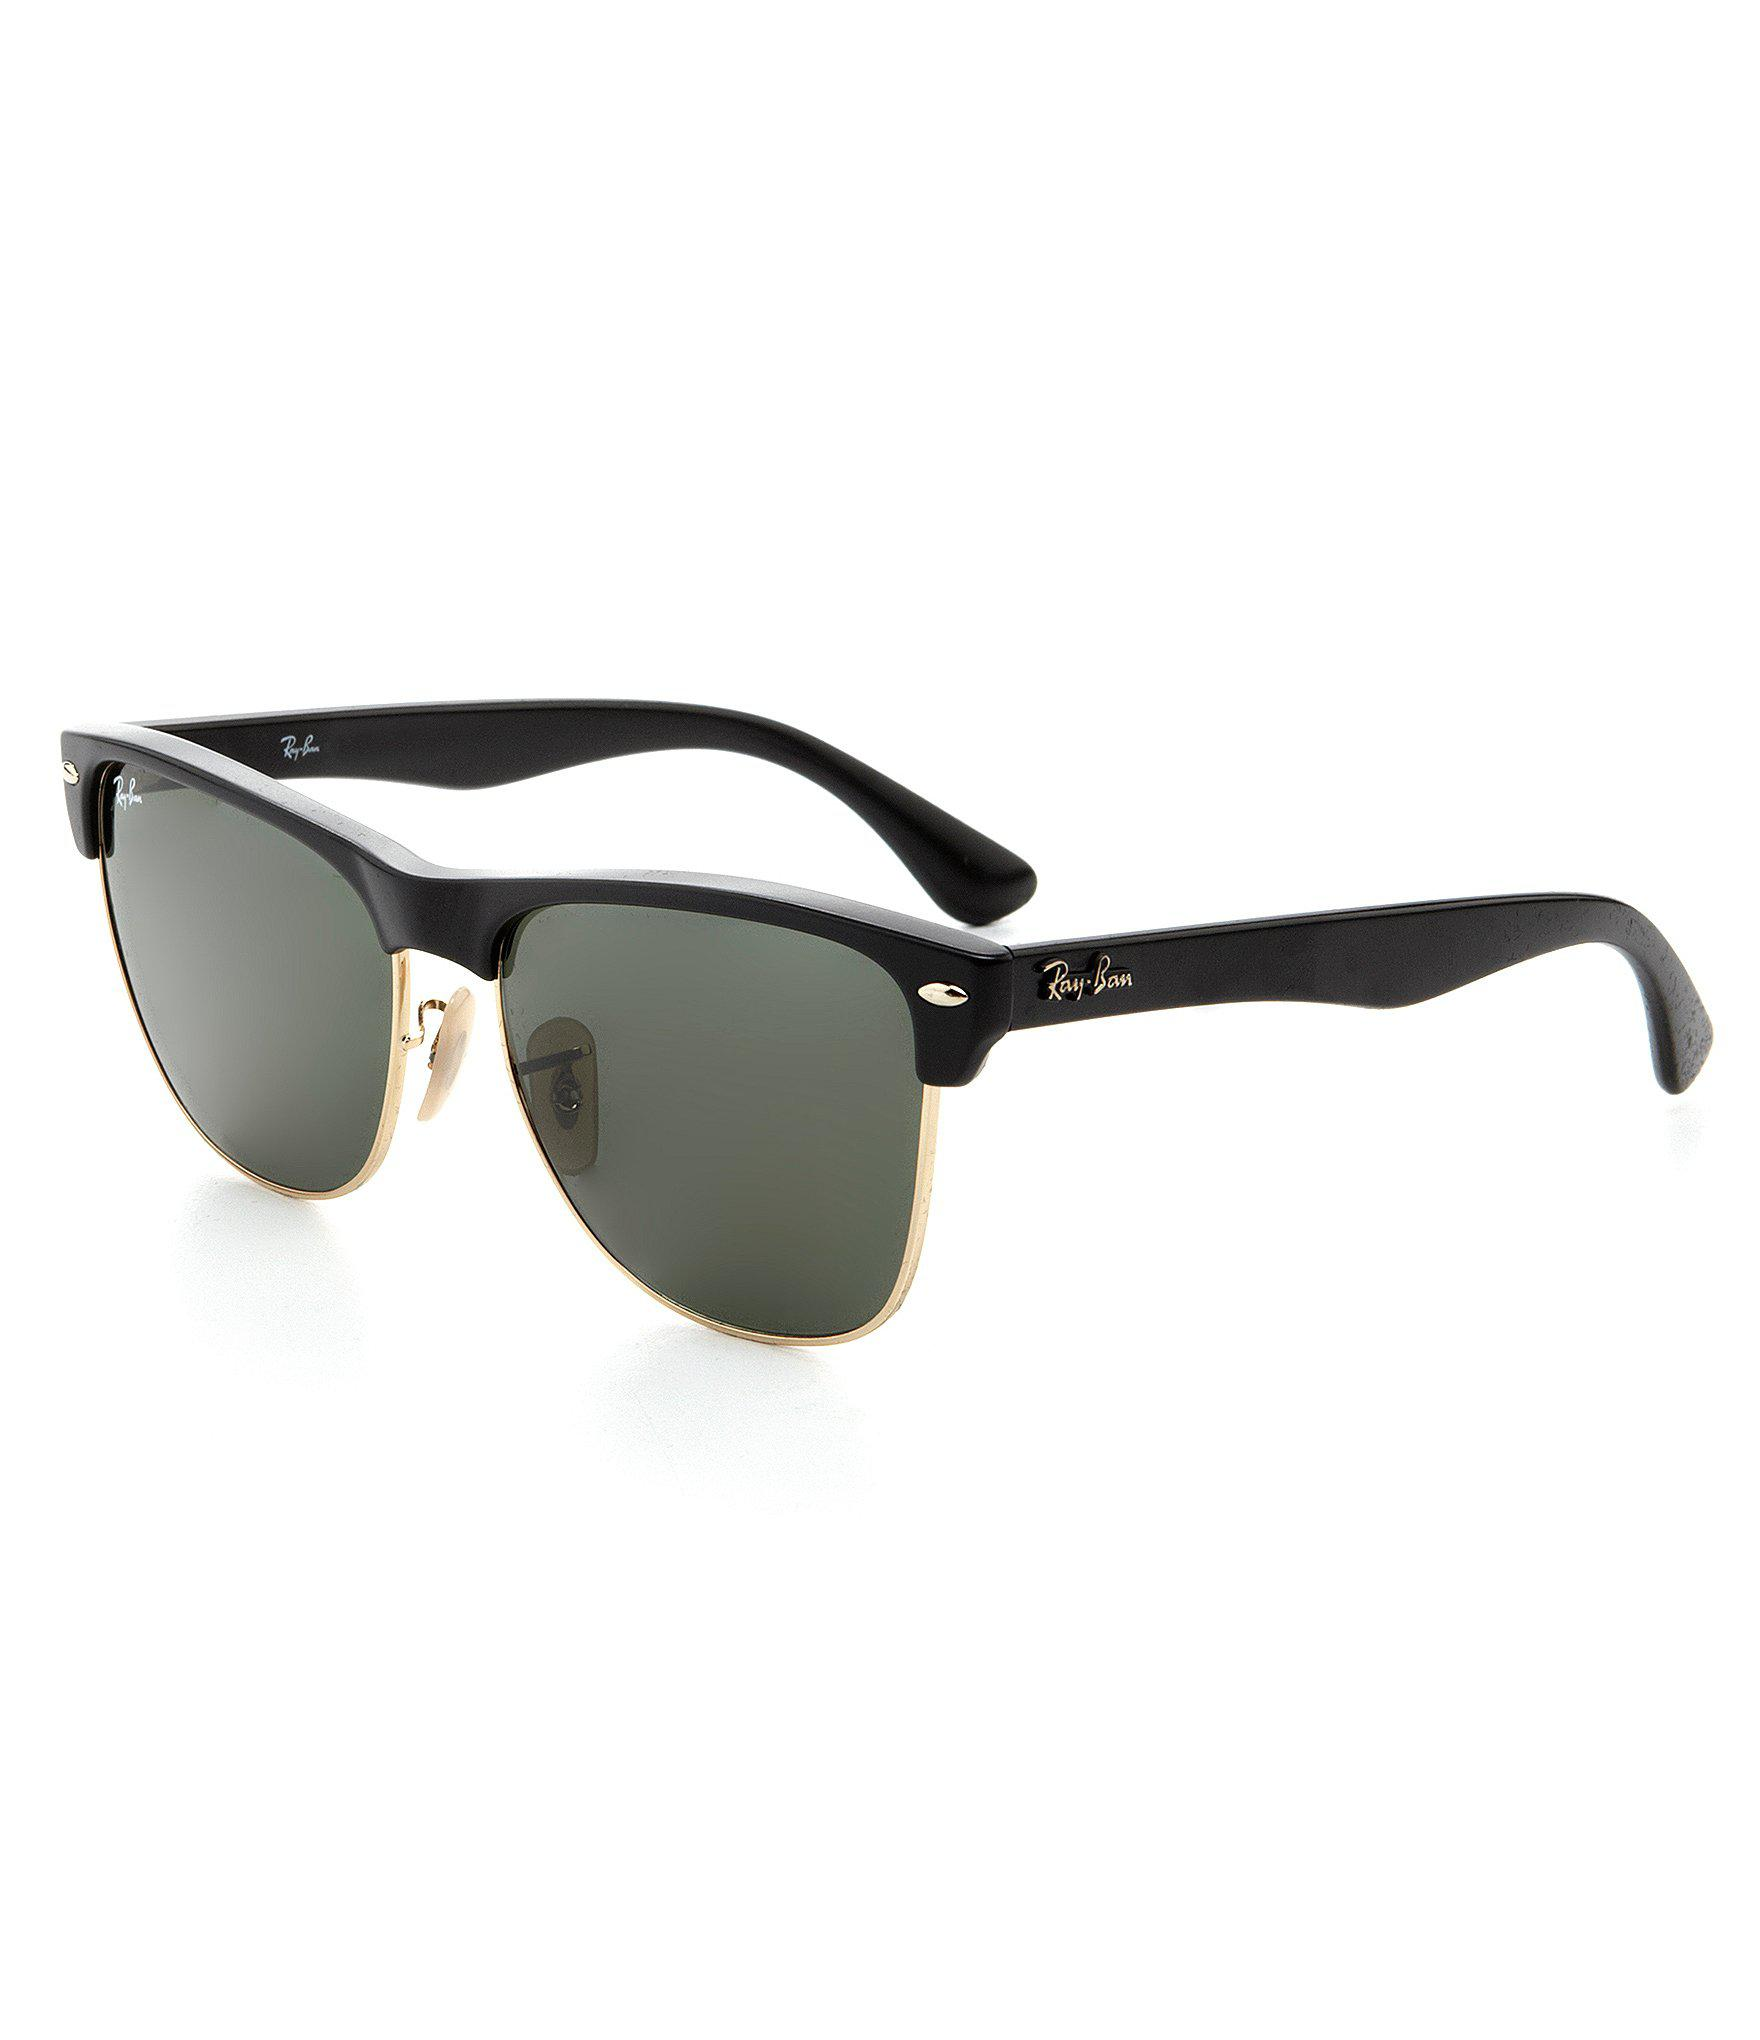 6eb1dcfc189 Lyst - Ray-Ban Iconic Clubmaster Sunglasses in Black for Men - Save 44%